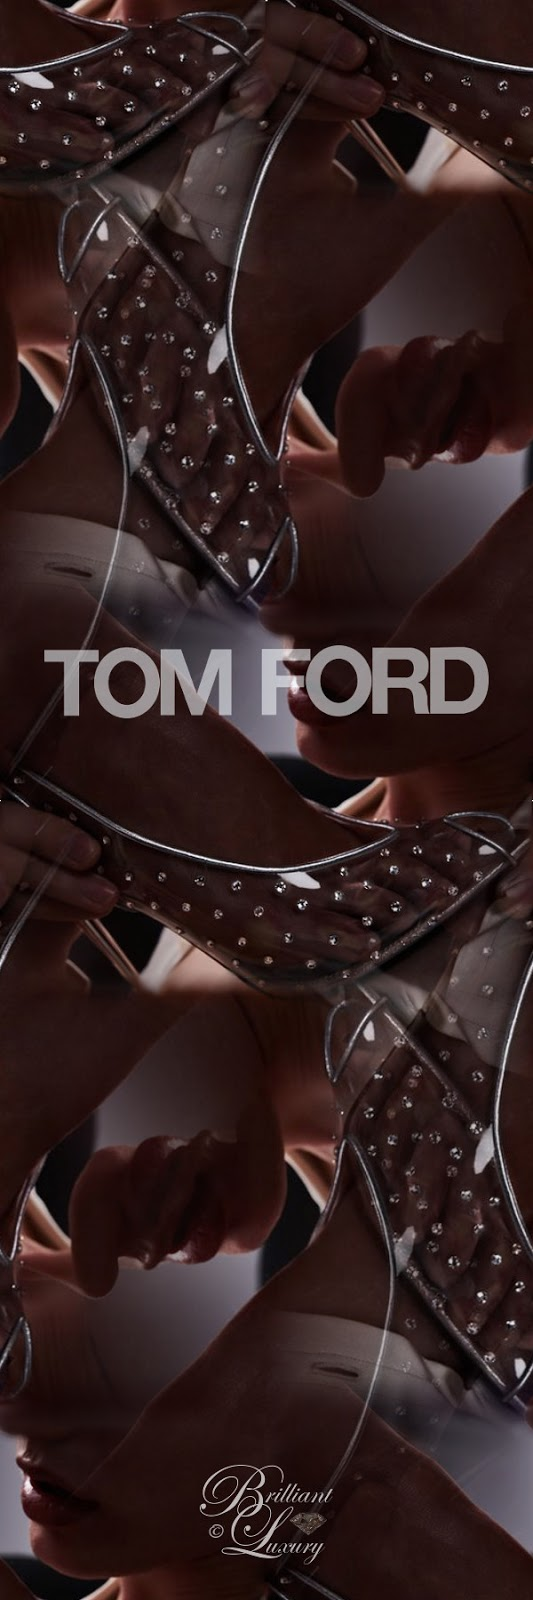 Brilliant Luxury ♦ Tom Ford shoe collection #shoeart